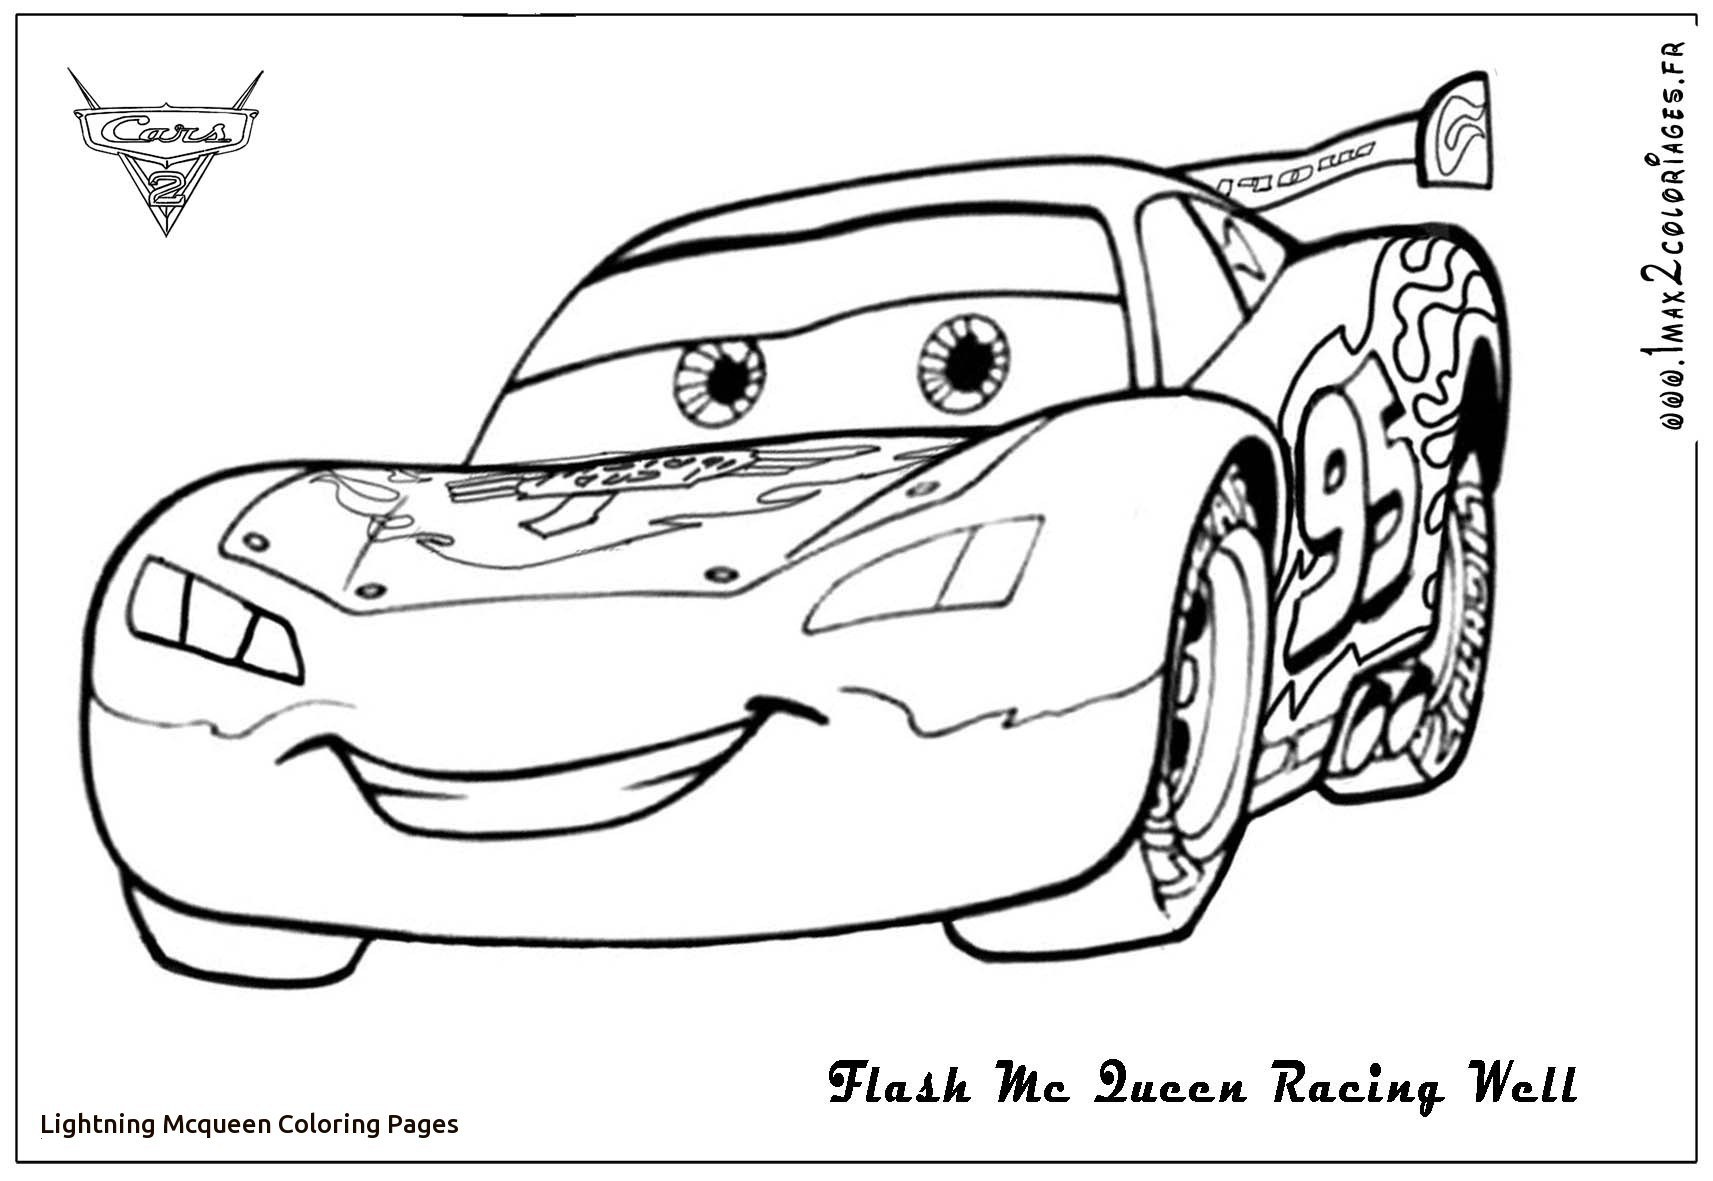 printable cars movie coloring pages Download-Lightning Mcqueen Free Coloring Pages Cars Movie Coloring Pages Lovable Coloring Pages Cars Fresh 1-n